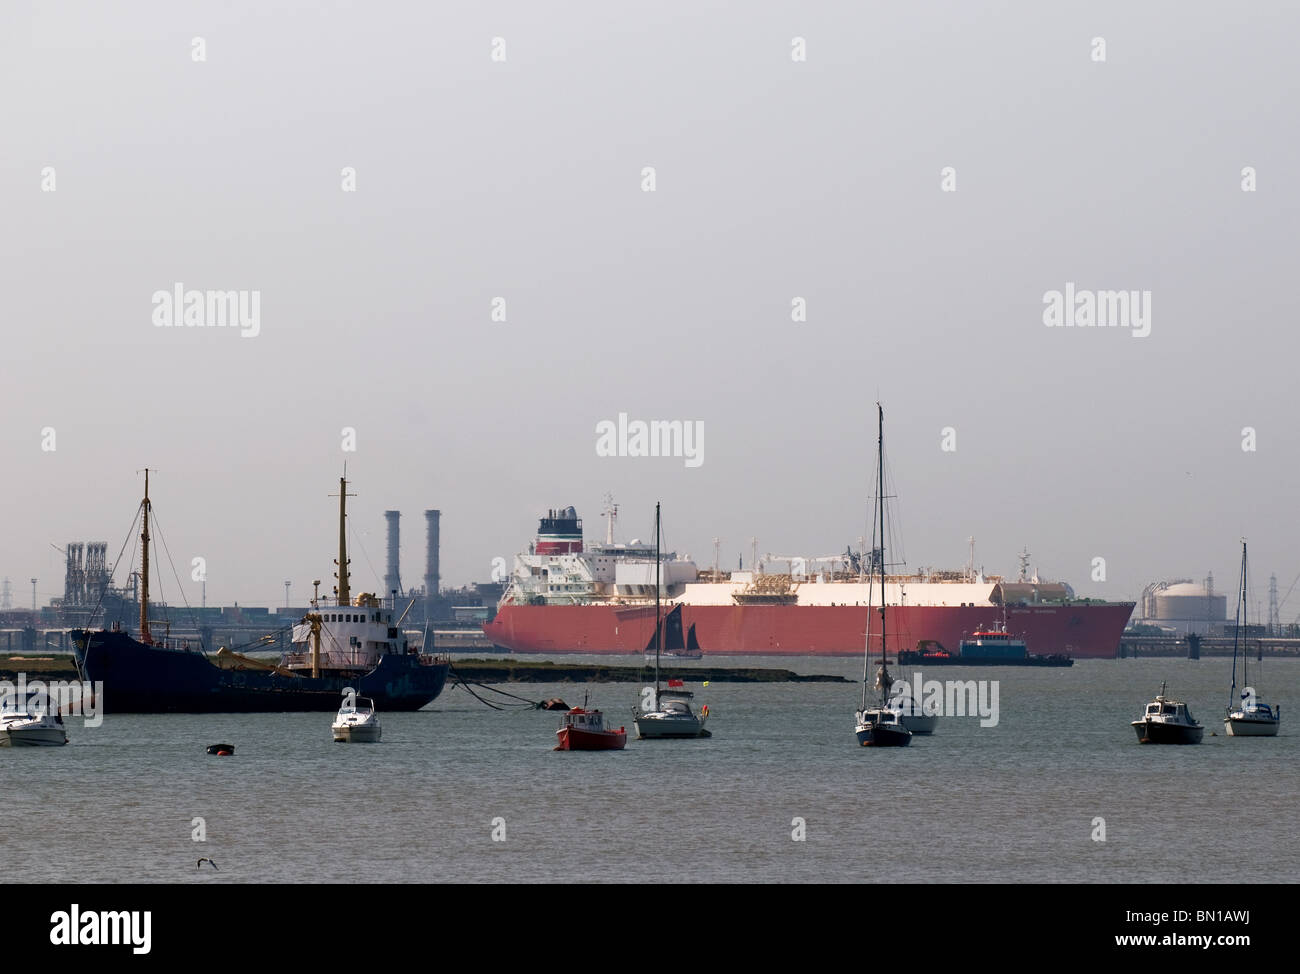 Ships moored in Sheerness Docks on the Isle of Sheppey in Kent. - Stock Image